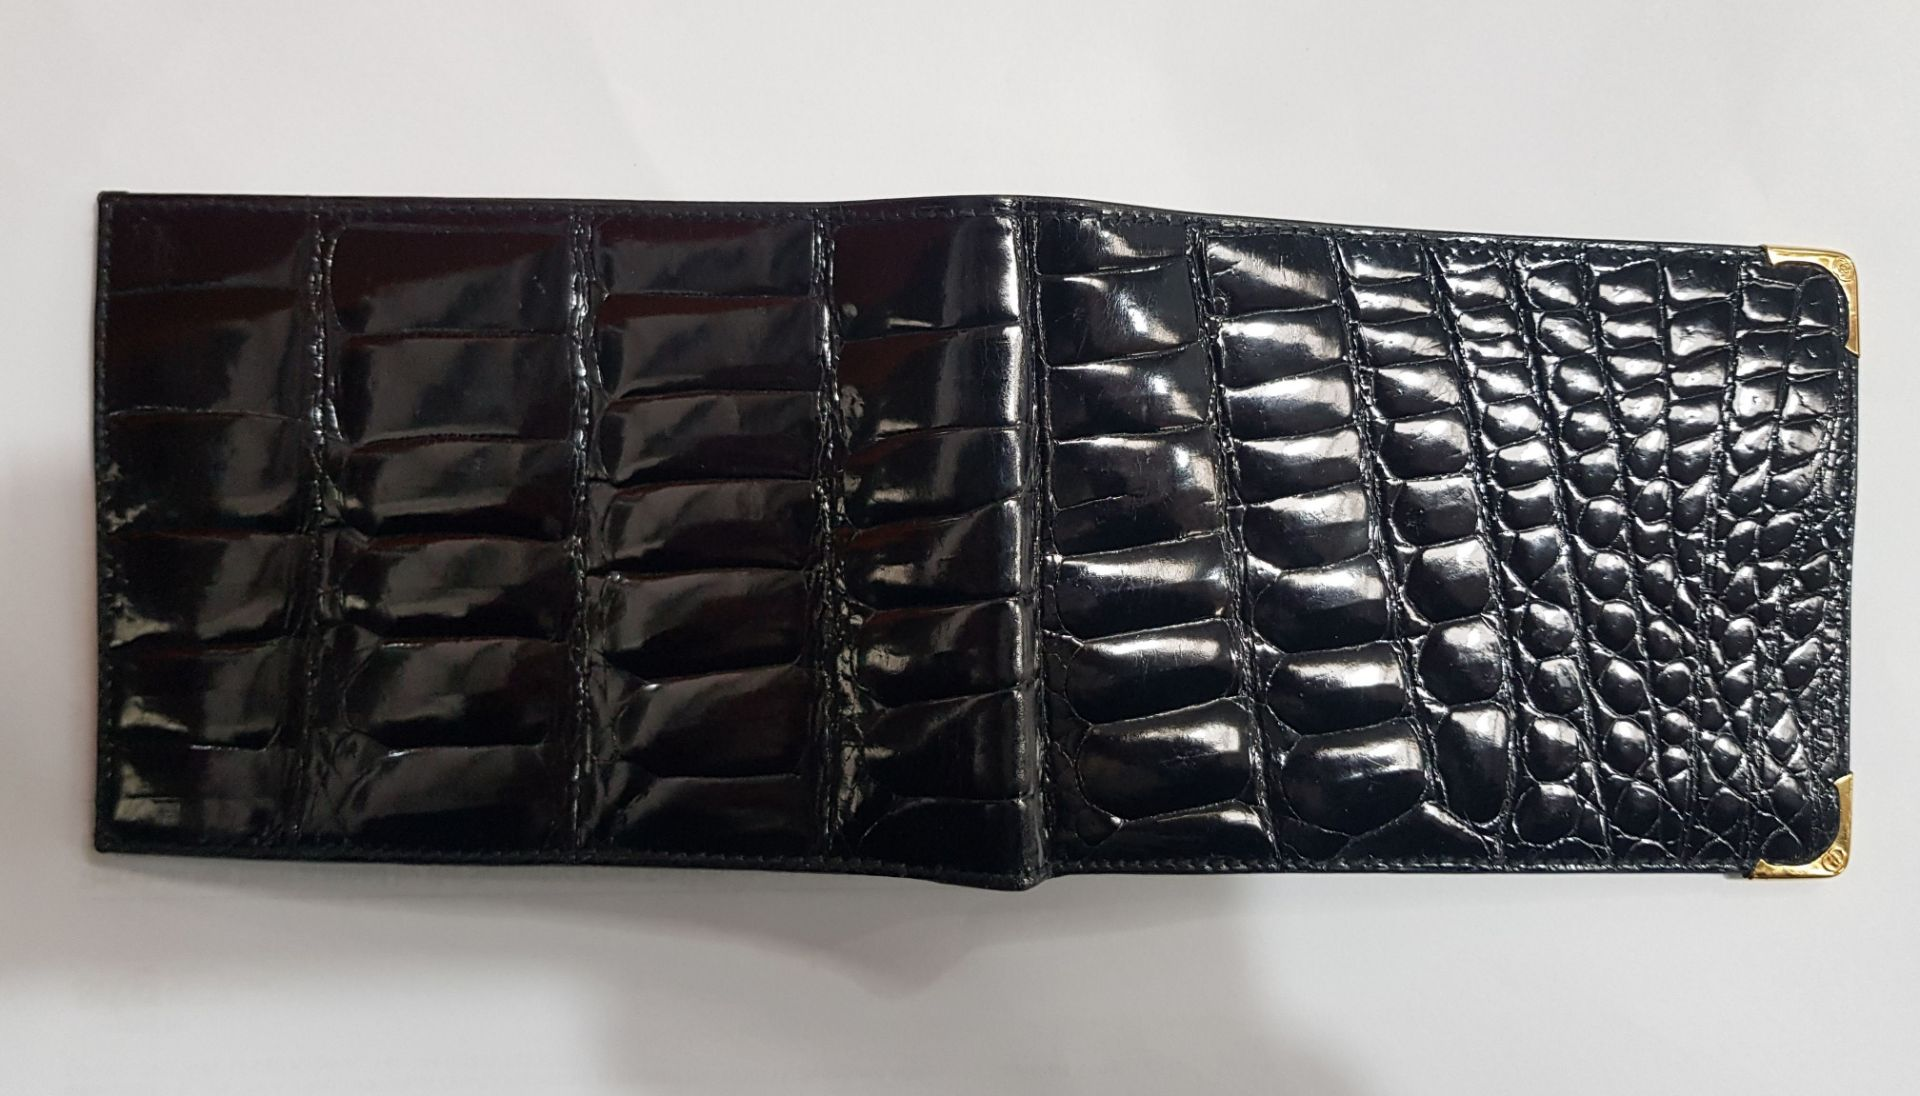 A GUCCI BLACK CROCODILE LEATHER WALLET - Image 3 of 4